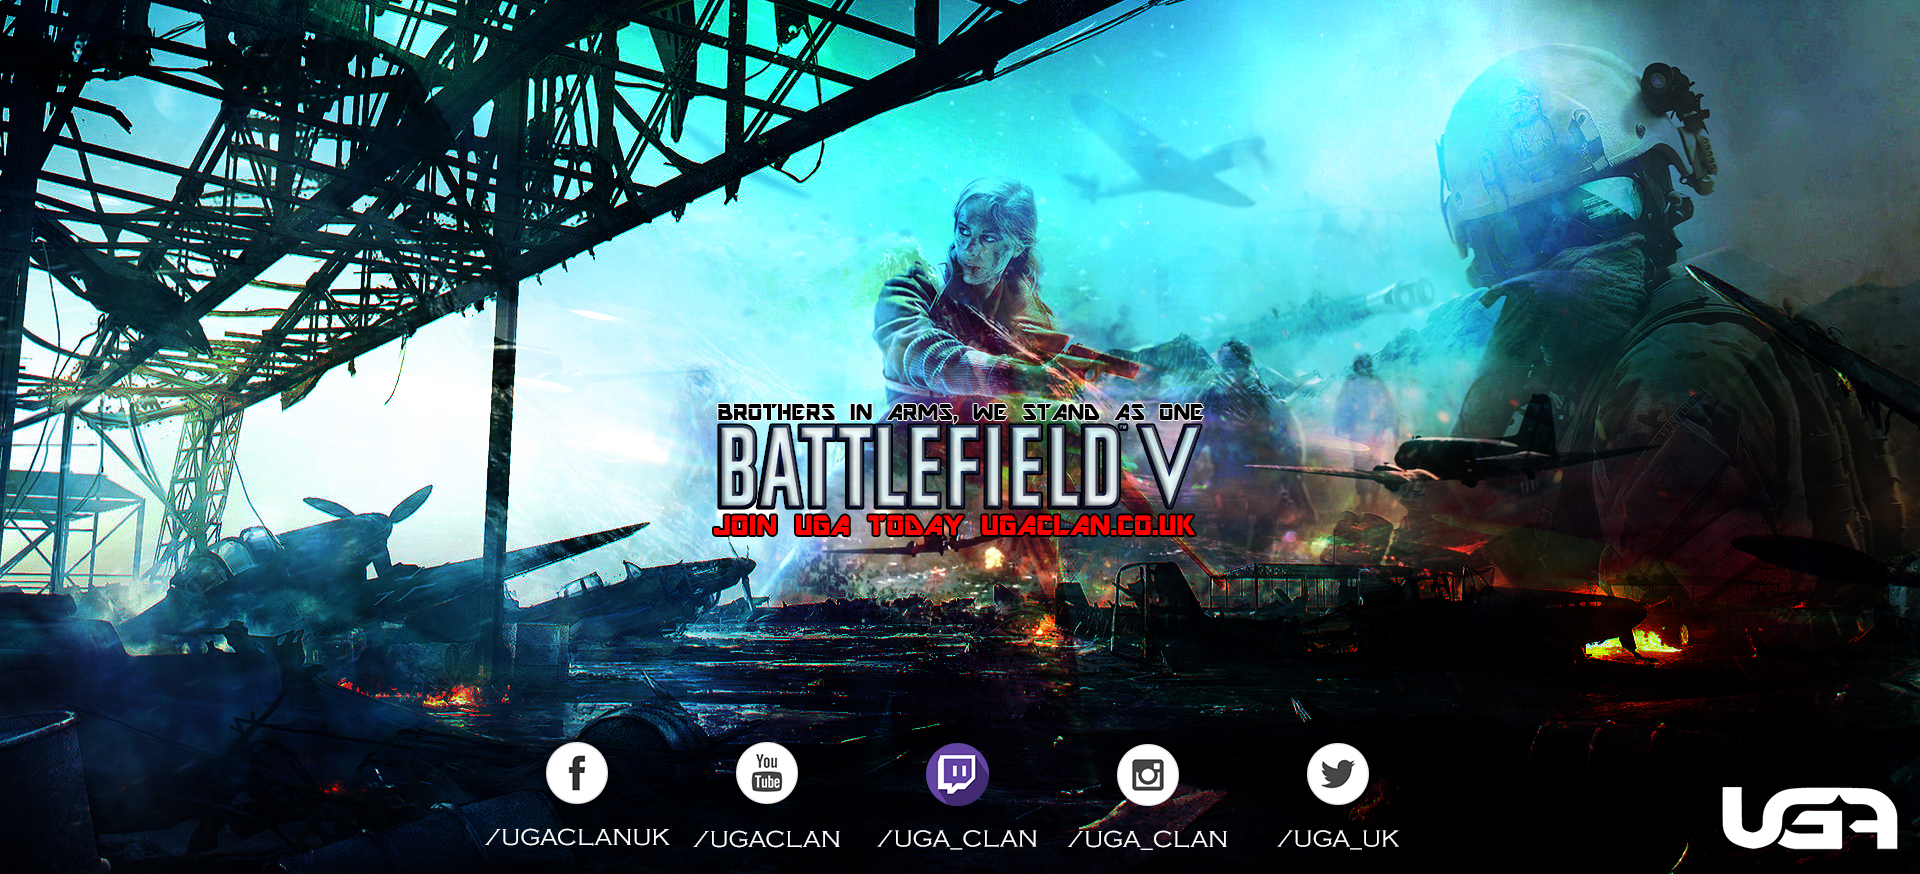 Battlefield-5-Concept-Art-2-Desktop-Background-1920x1080.jpg